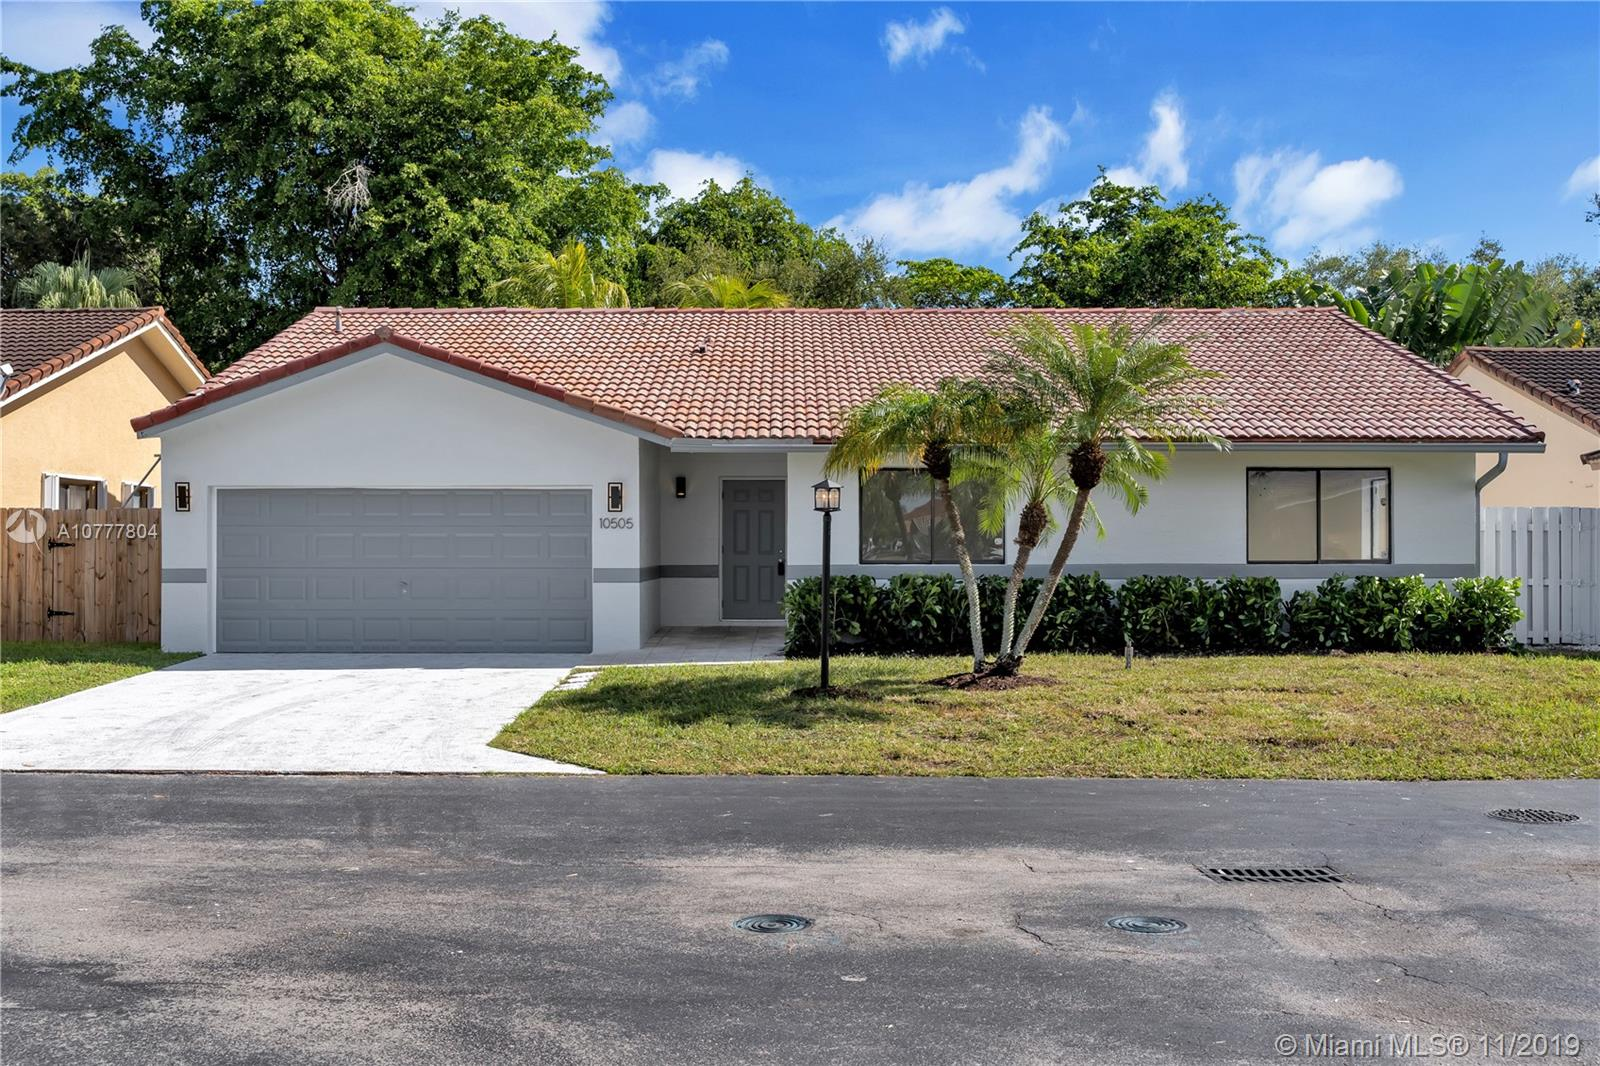 10505 SW 158TH PL, Kendall in Miami-dade County County, FL 33196 Home for Sale